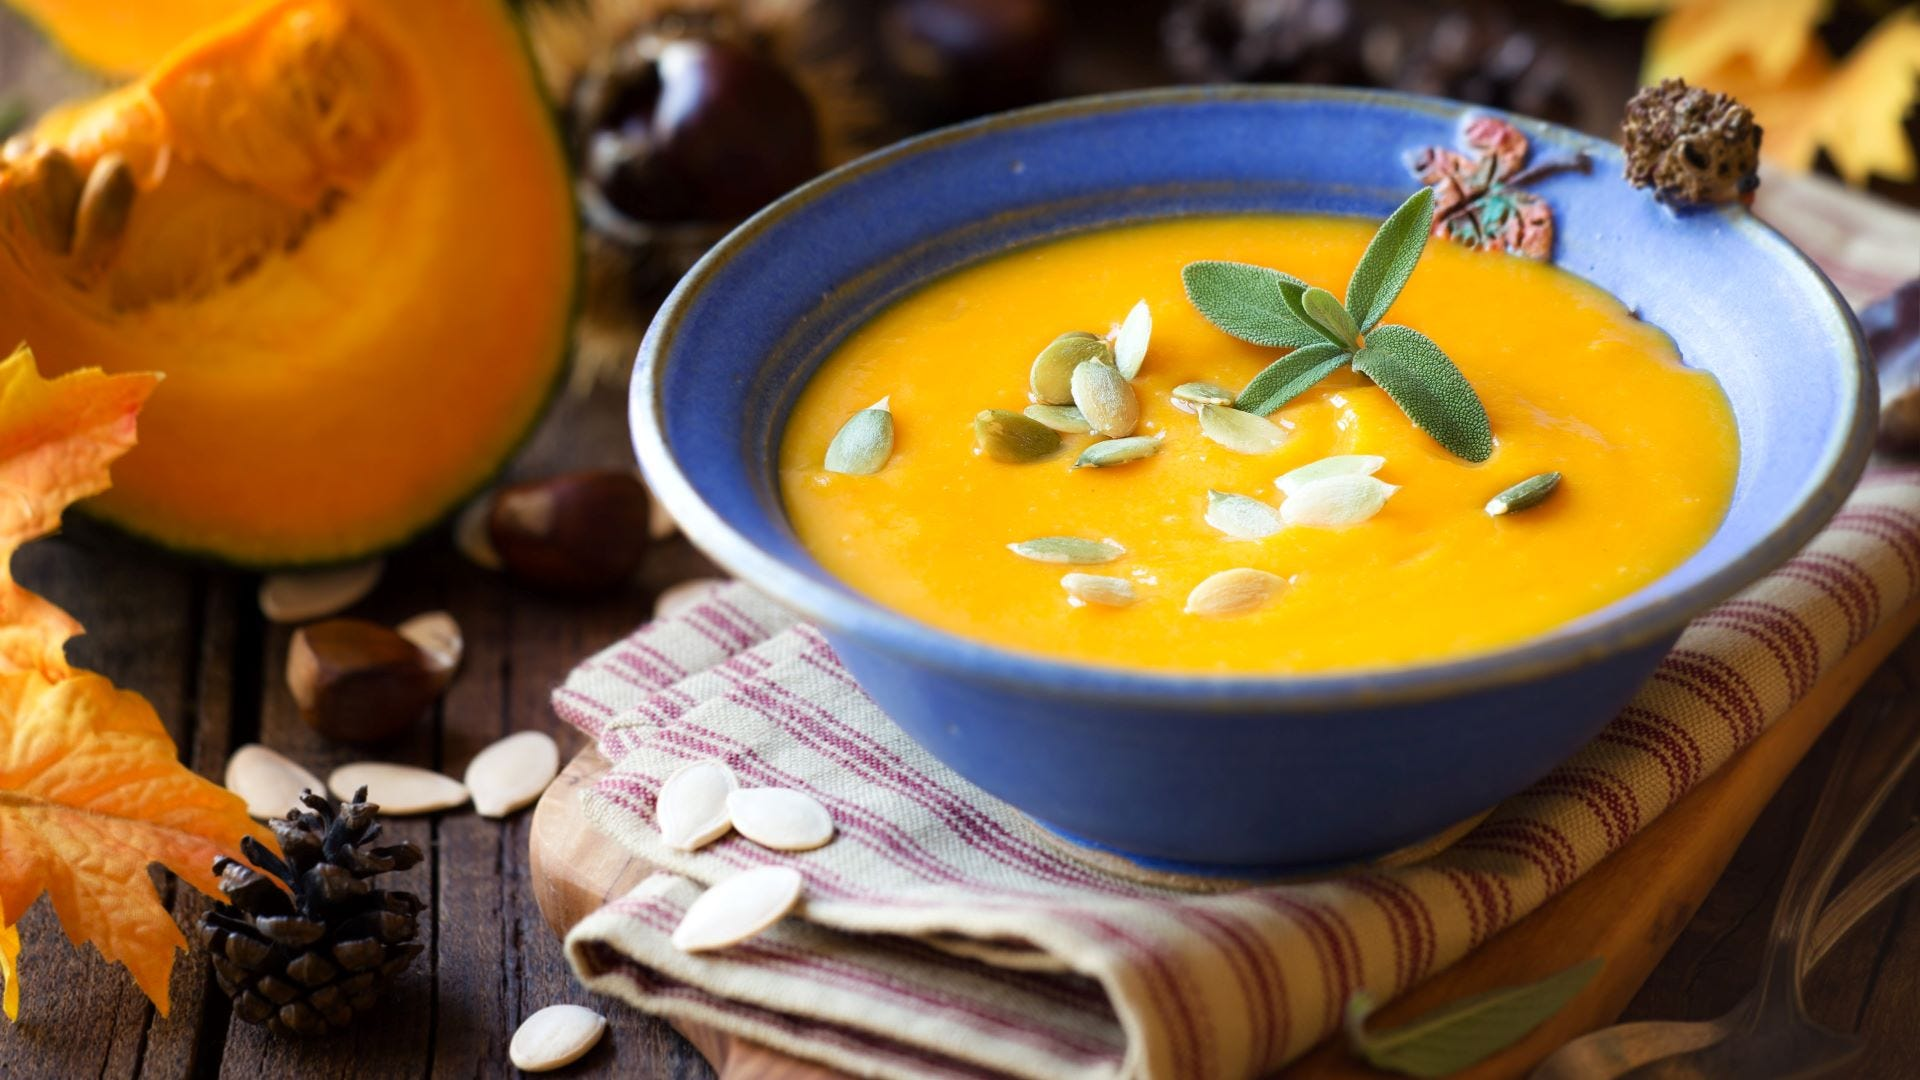 A bowl of pumpkin and sage soup with pumpkin seeds on top.